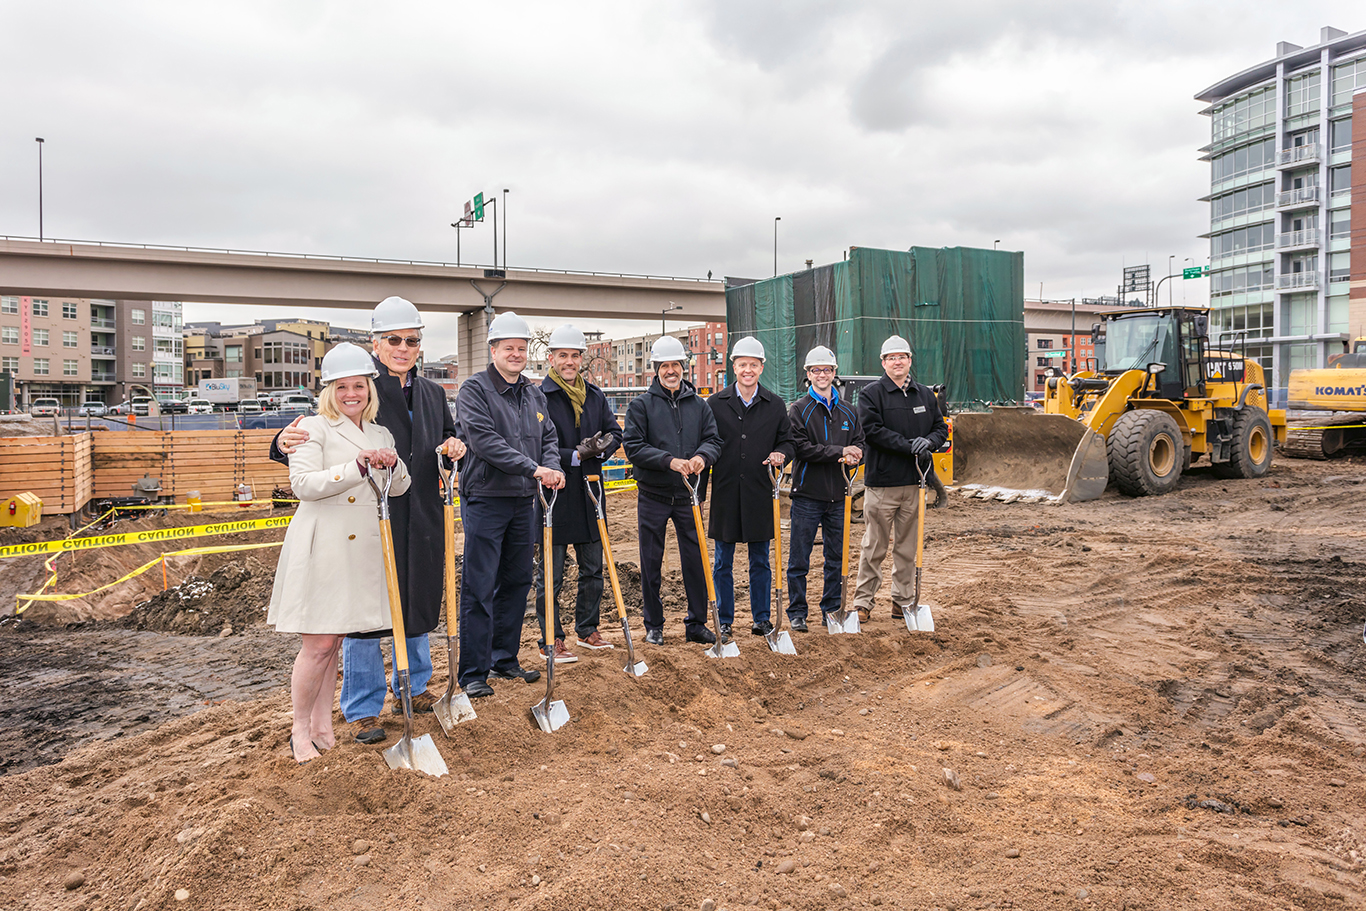 Event Round-Up: Hilton Garden Inn Denver Union Station Breaks Ground